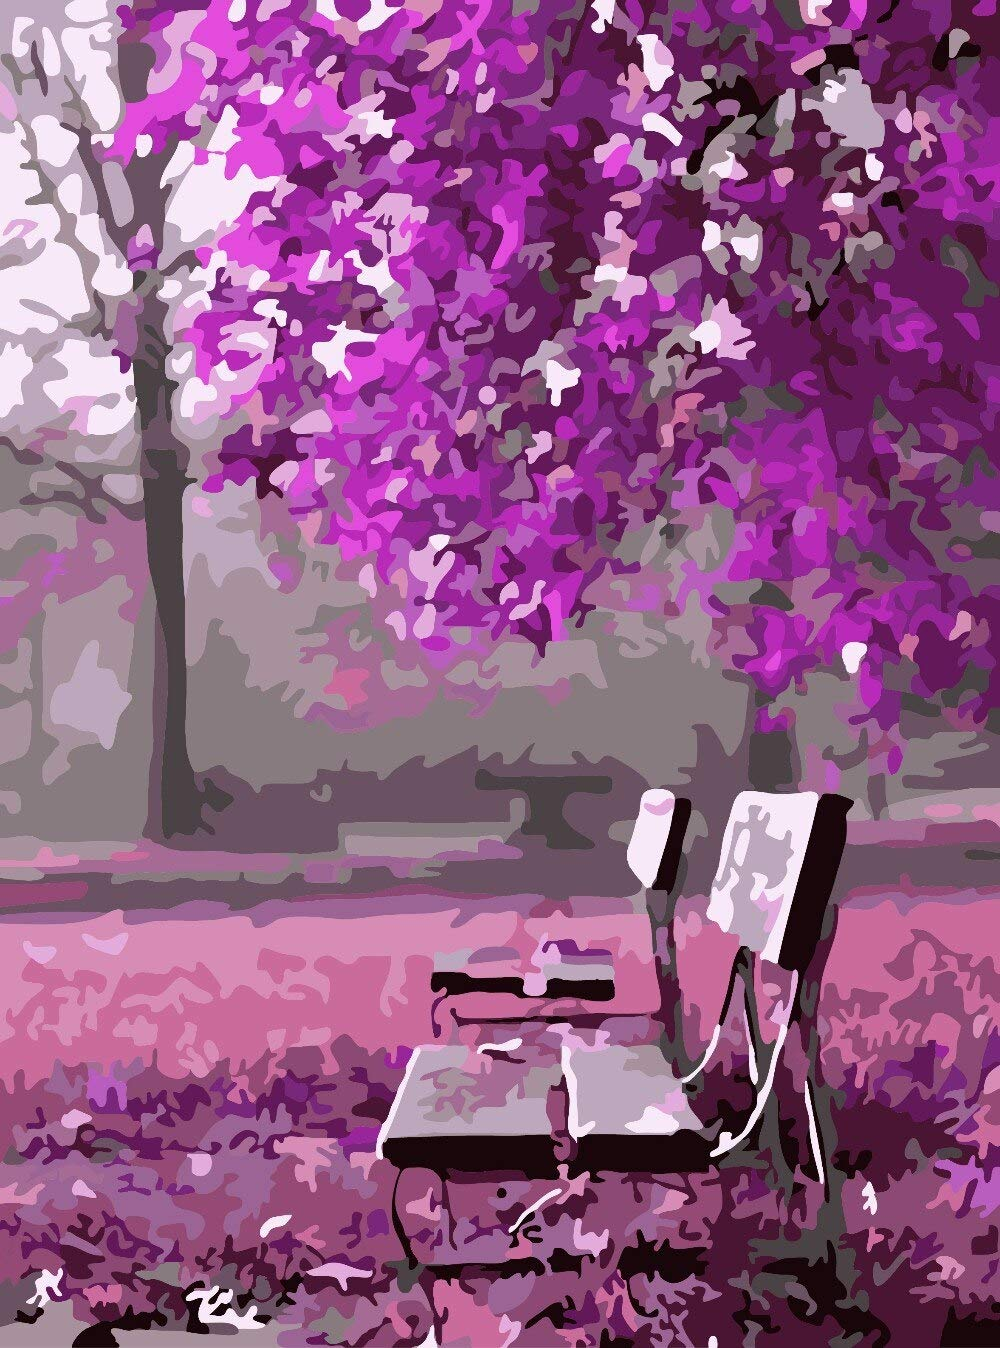 DIY Paint by Numbers Kit for Adults - Purple World   Paint by Number Kit On Canvas for Beginners   Home Wall Decor   Pre-Printed Art-Quality Canvas 20'' x 16'', 3 Brushes, 24 Acrylic Paints by Alto Crafto